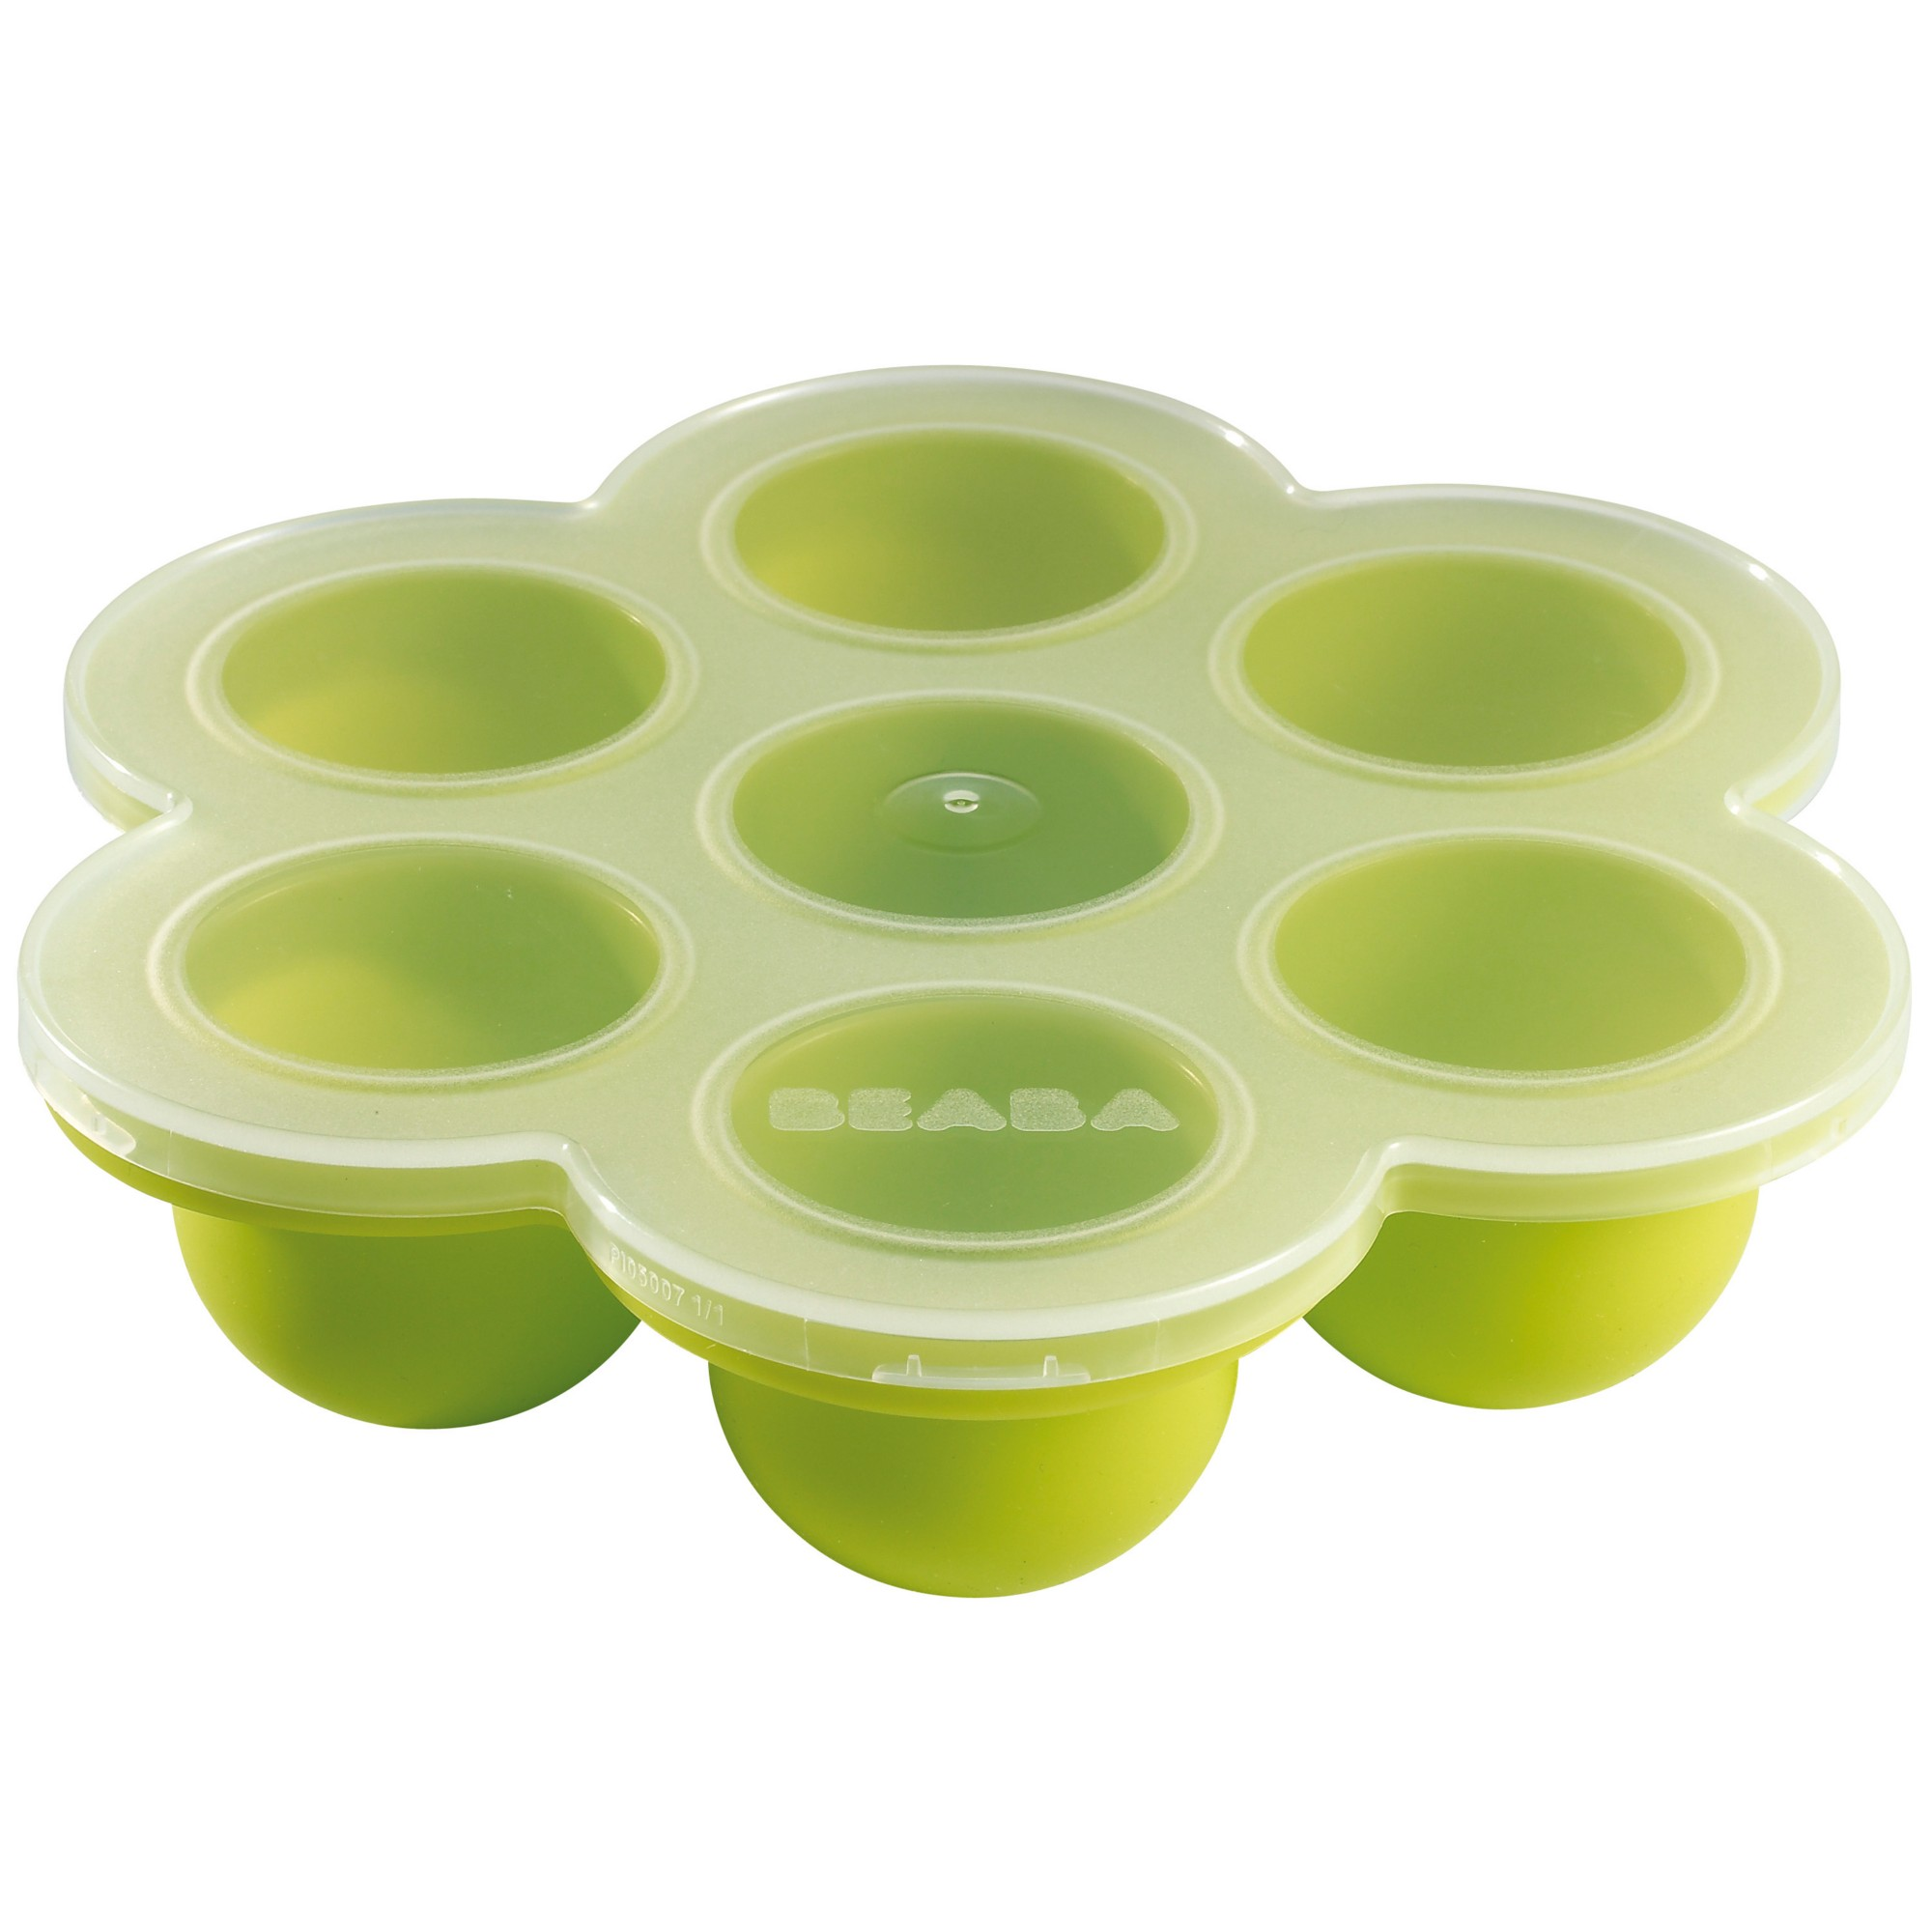 beaba multi portion silicone freezing tray by john lewis. Black Bedroom Furniture Sets. Home Design Ideas